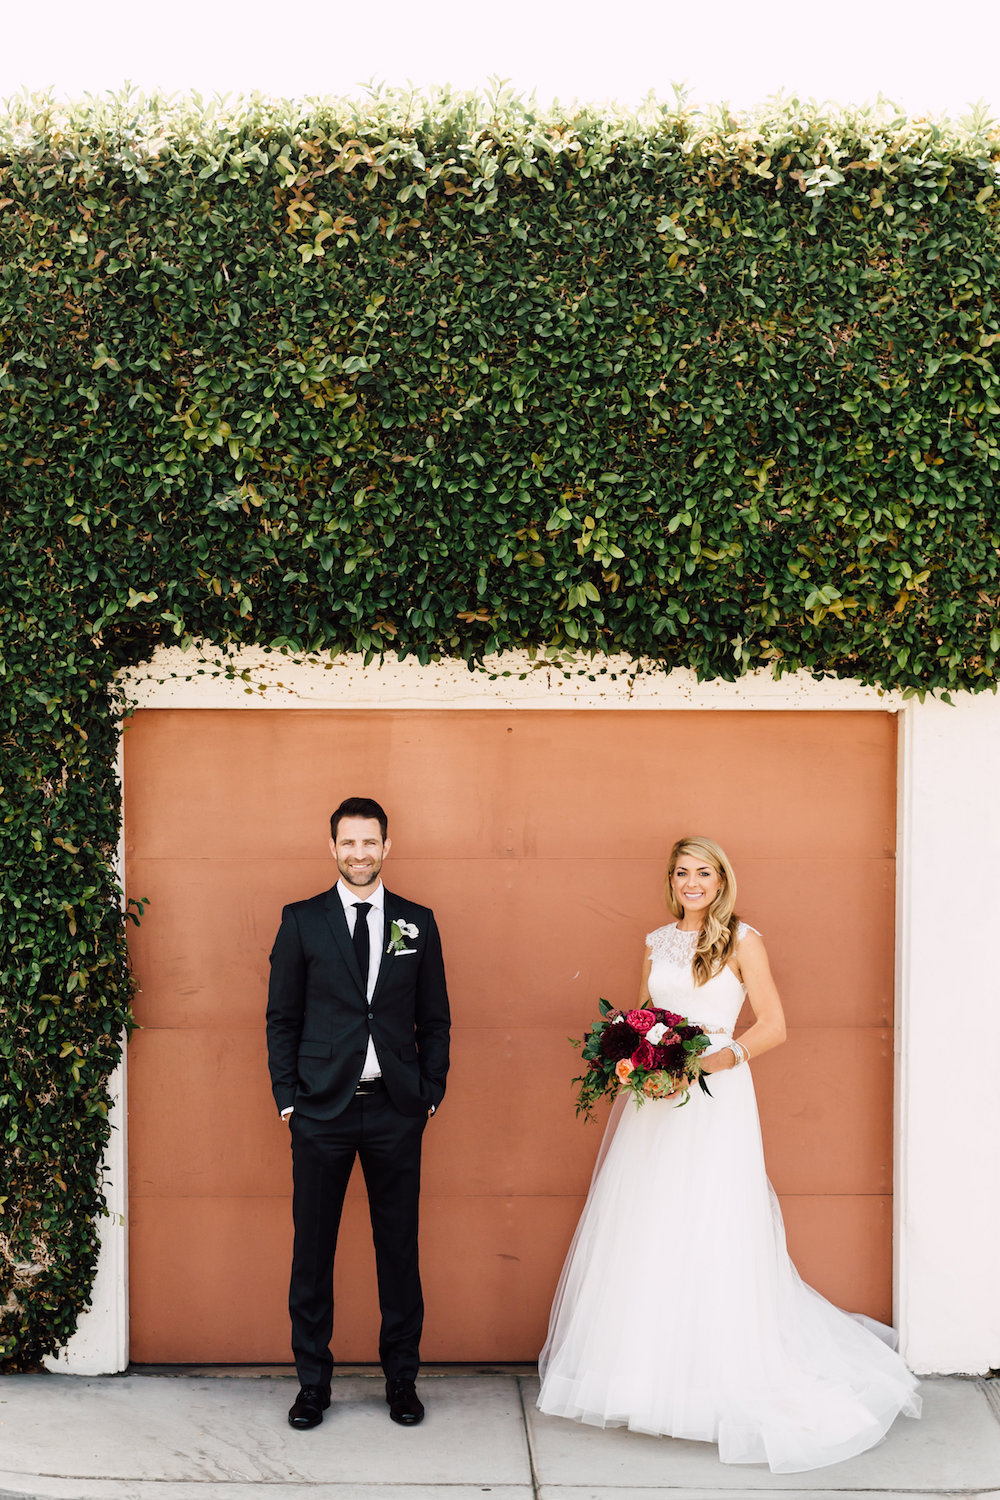 Modern, classic, colorful bride and groom with garden rose and dahlia bridal bouquet by Compass Floral | Darlington House, La Jolla.